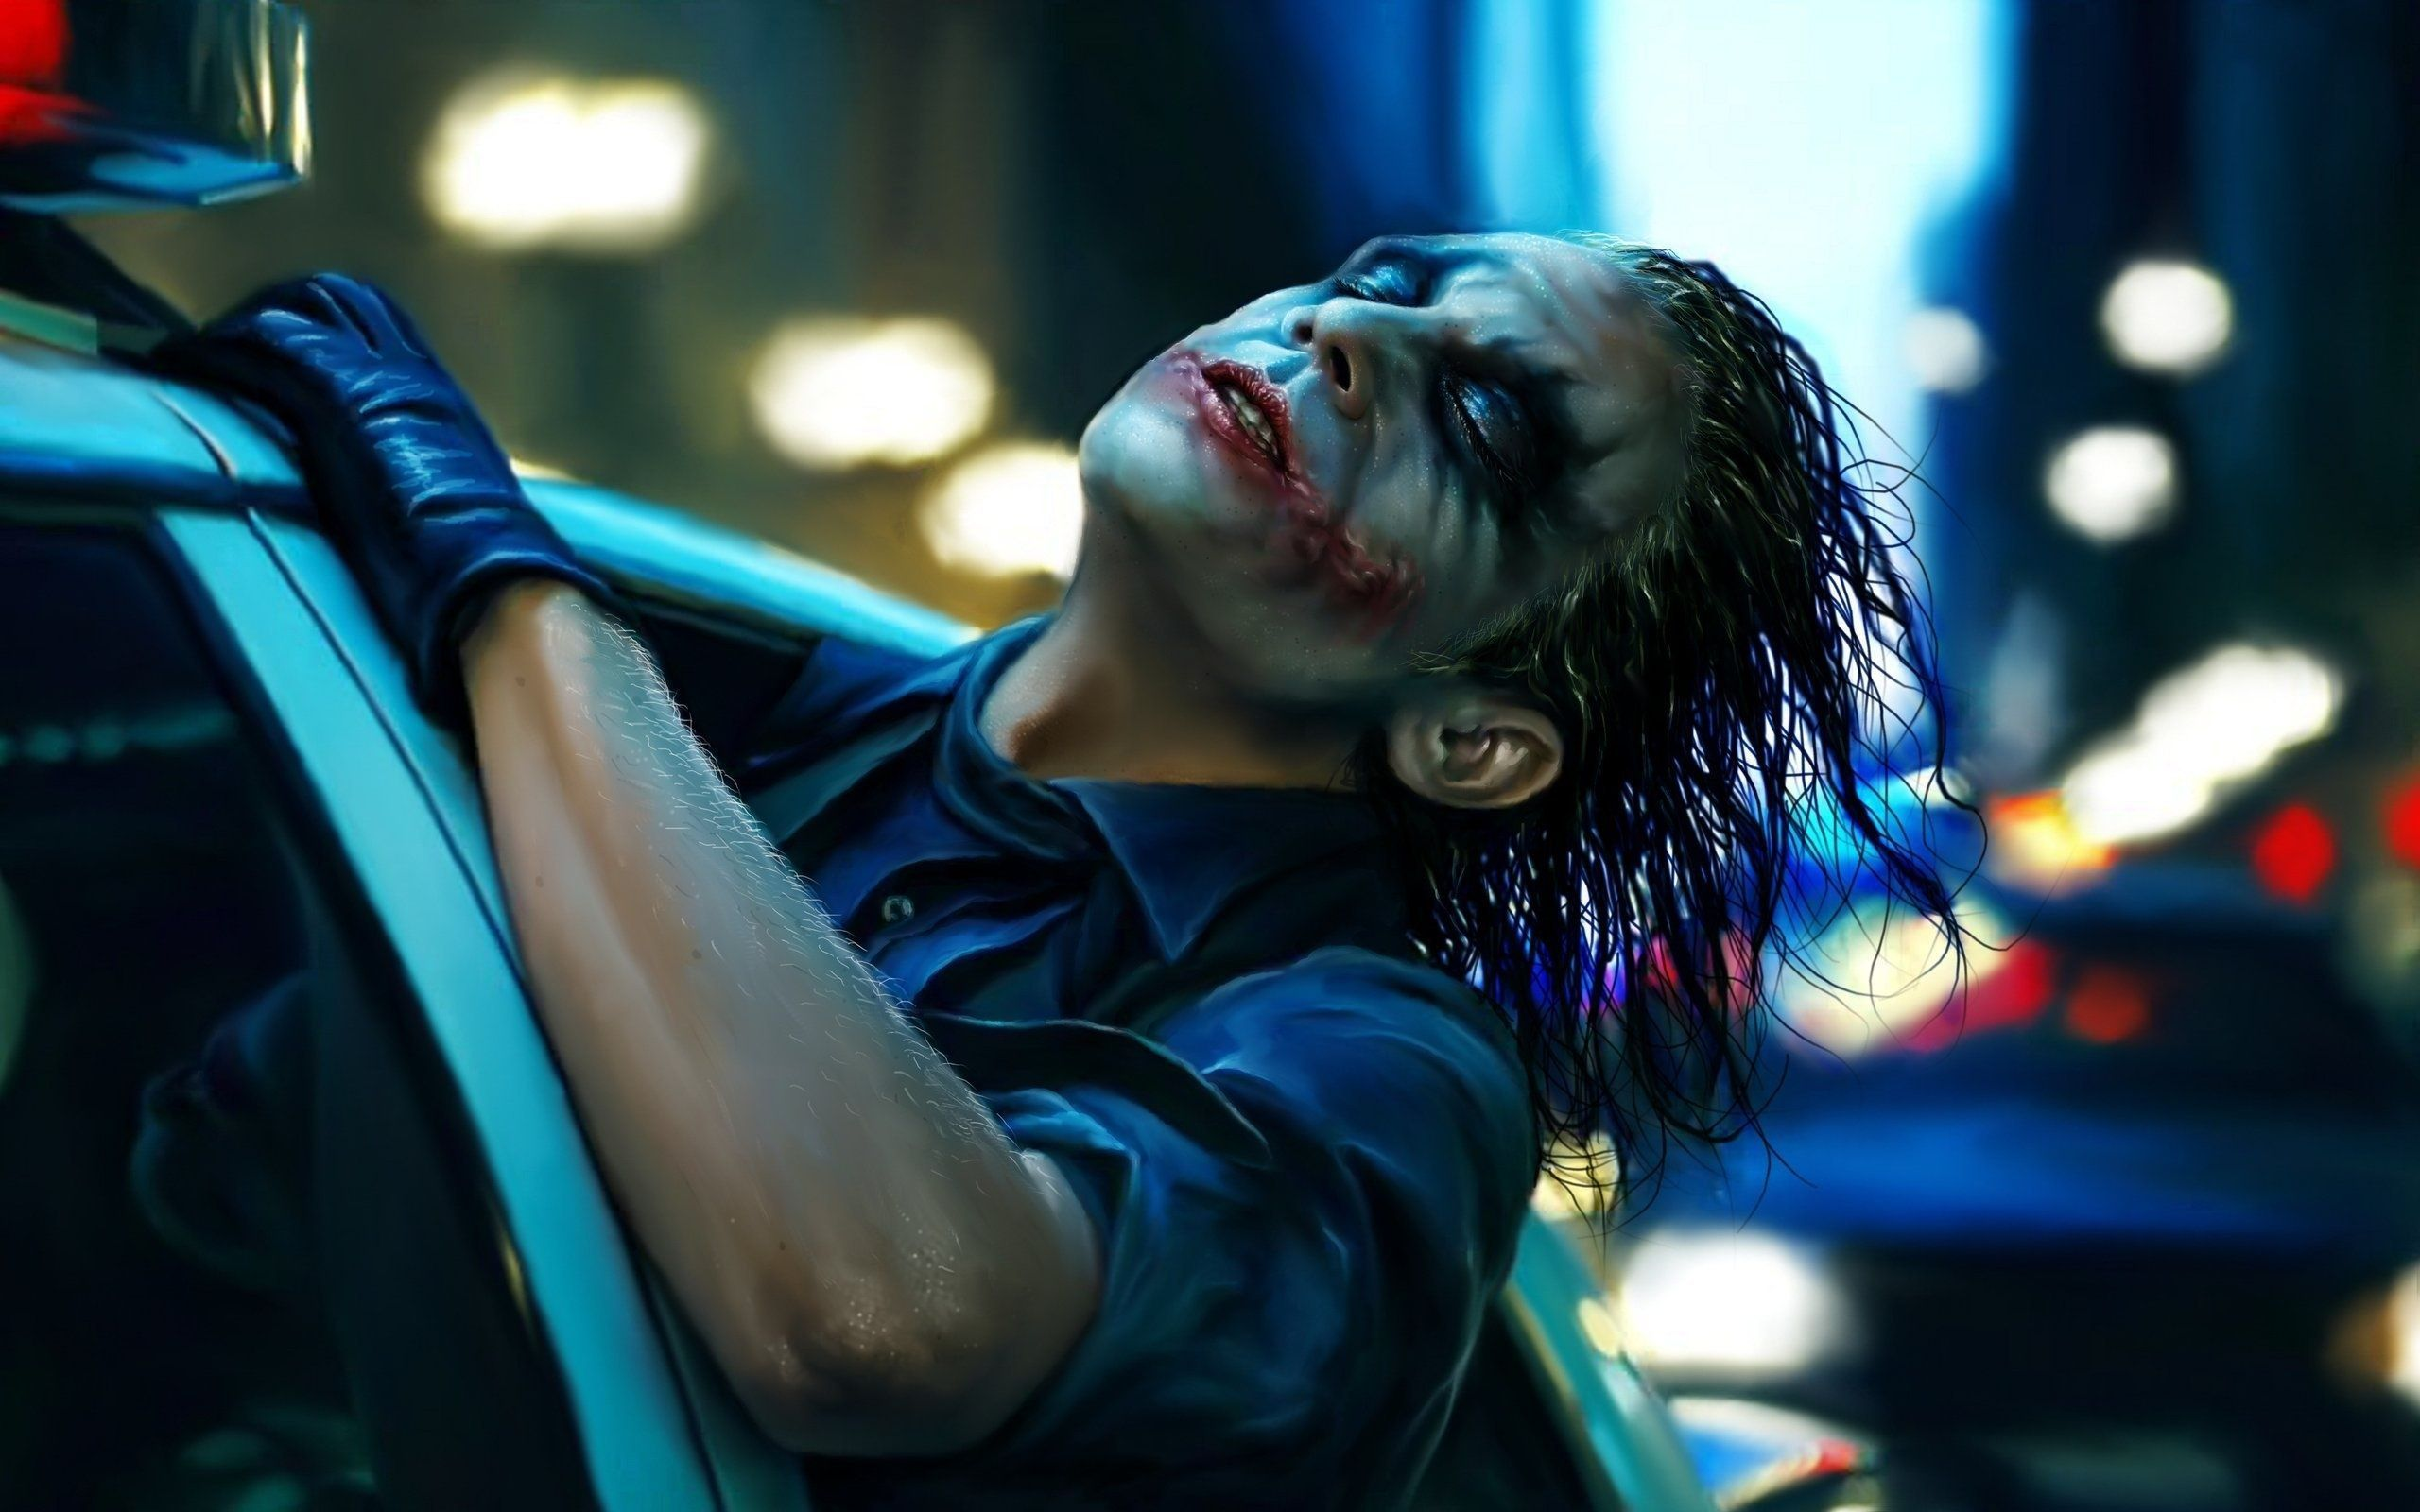 joker wallpapers desktop wallpaper a goodwp com